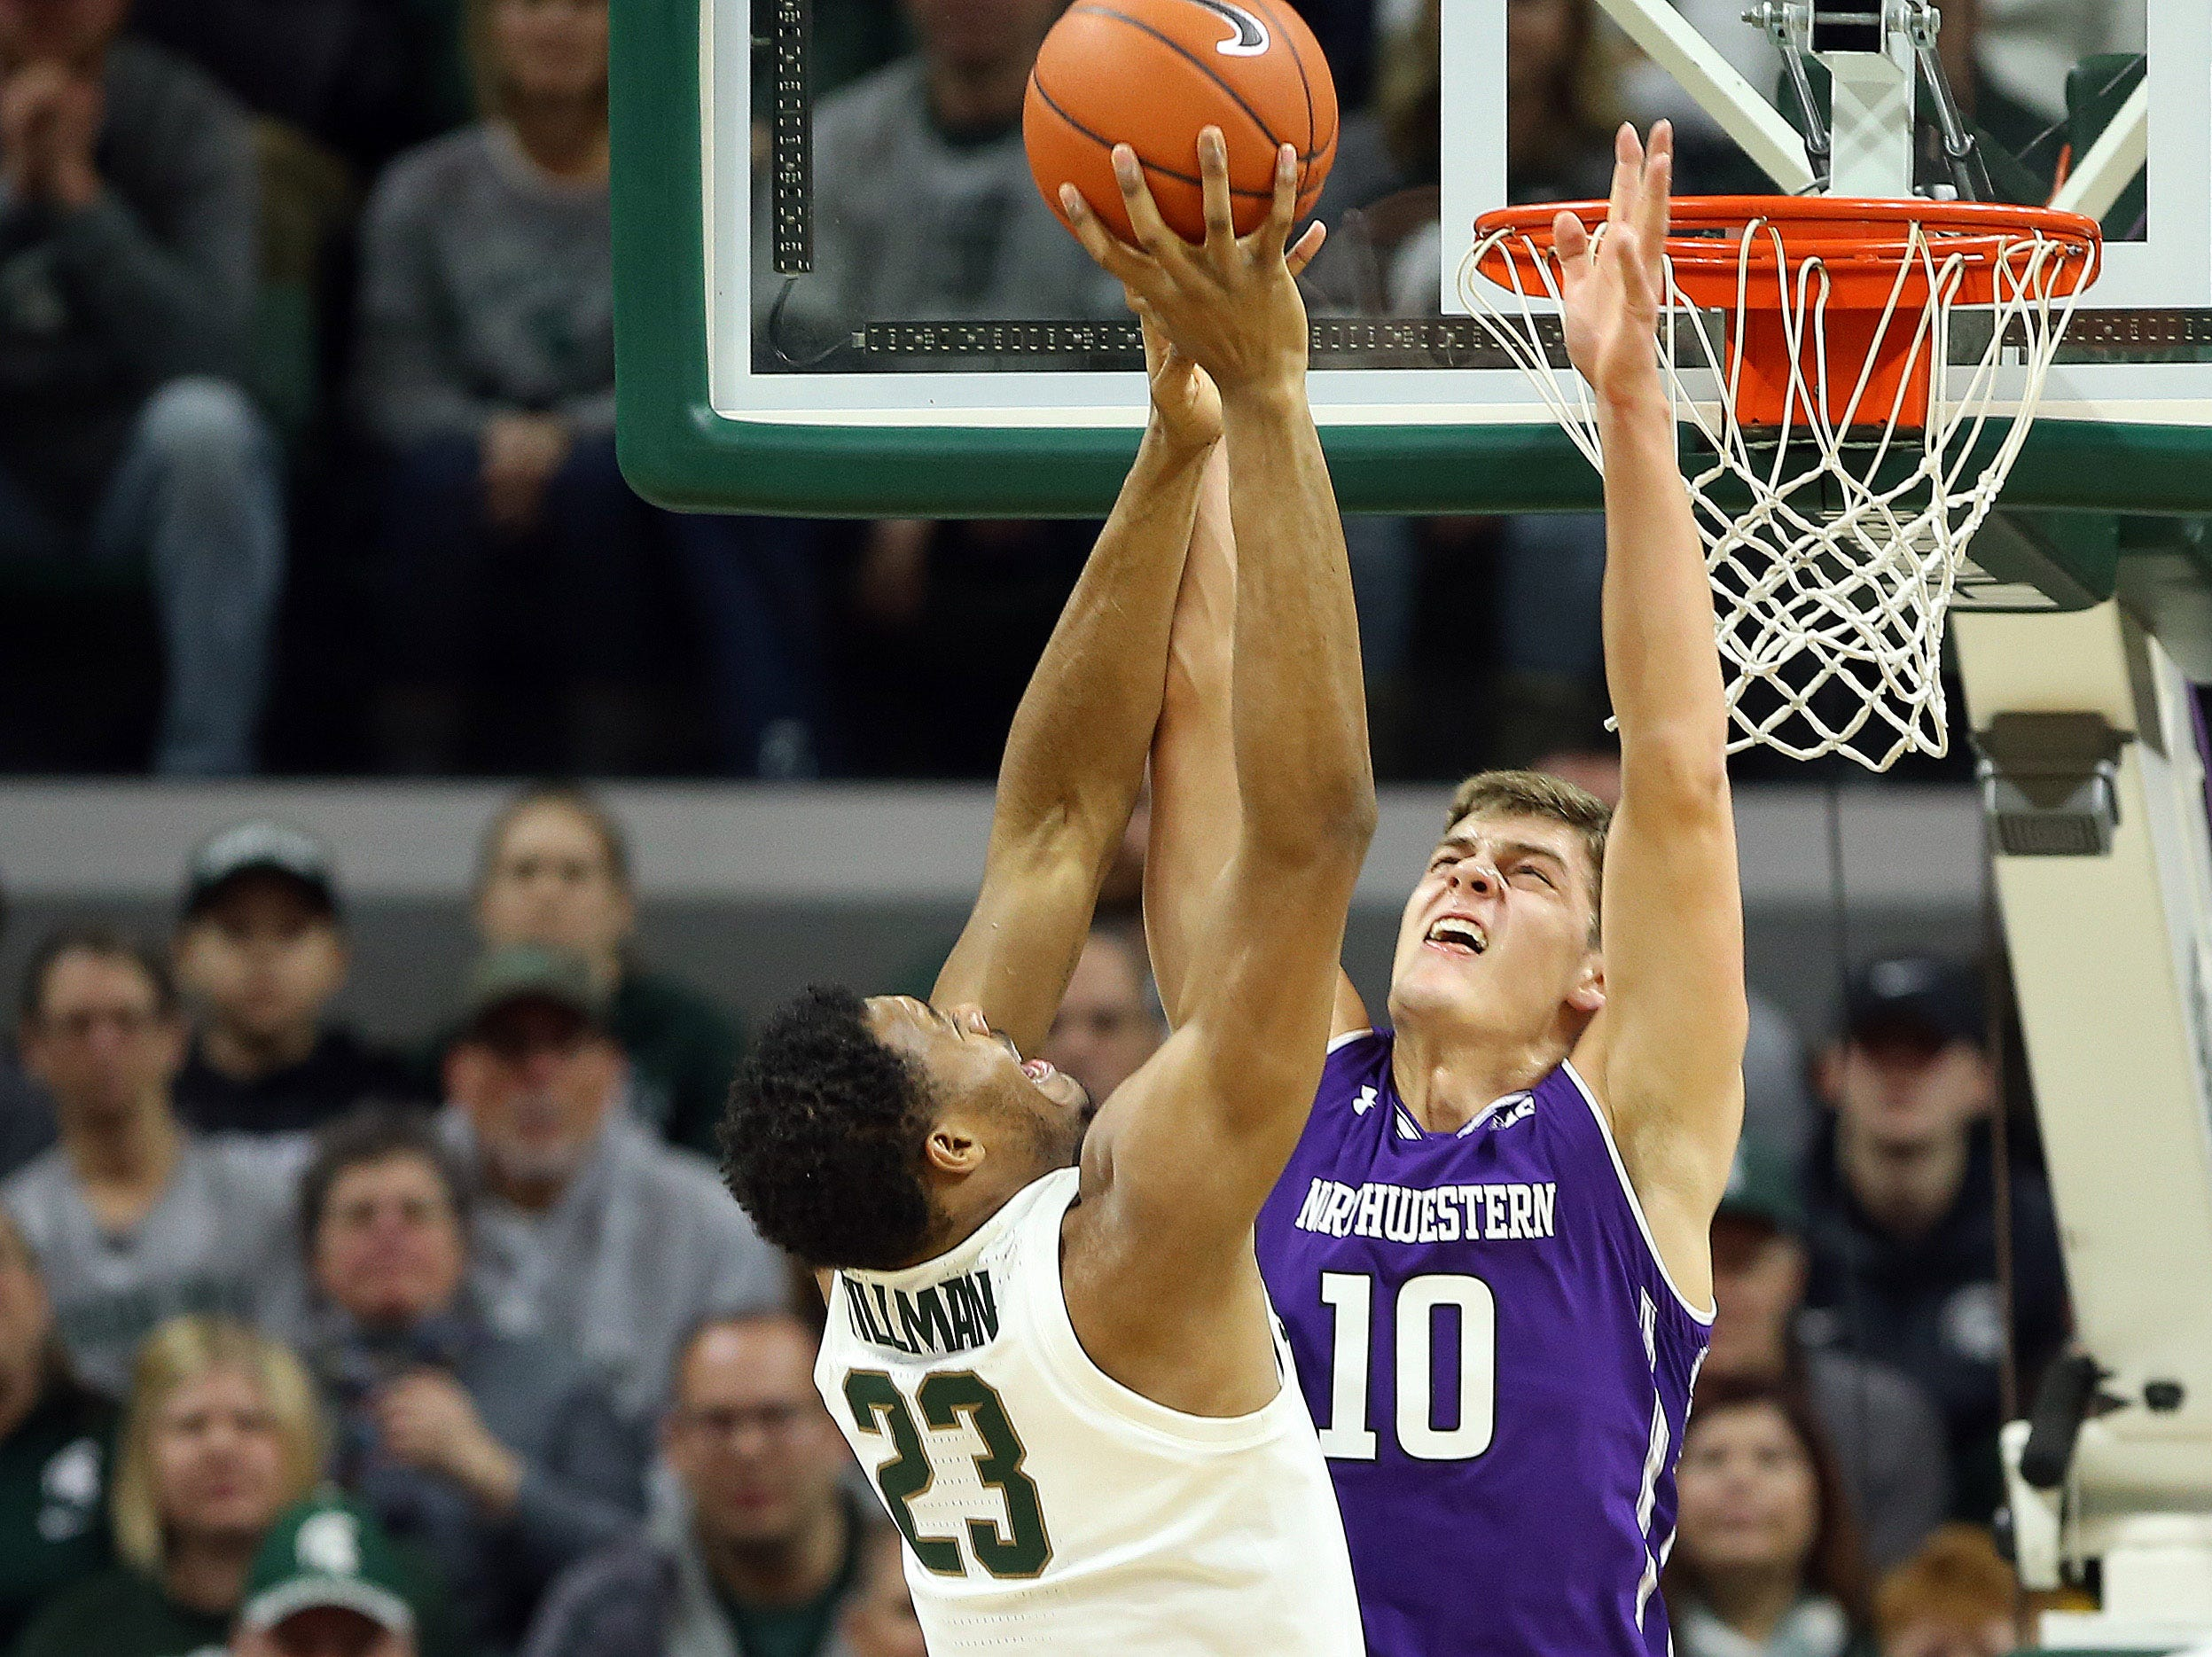 Jan 2, 2019; East Lansing, MI, USA; Michigan State Spartans forward Xavier Tillman (23) shoots the ball over Northwestern Wildcats forward Miller Kopp (10) during the first half of a game at the Breslin Center. Mandatory Credit: Mike Carter-USA TODAY Sports